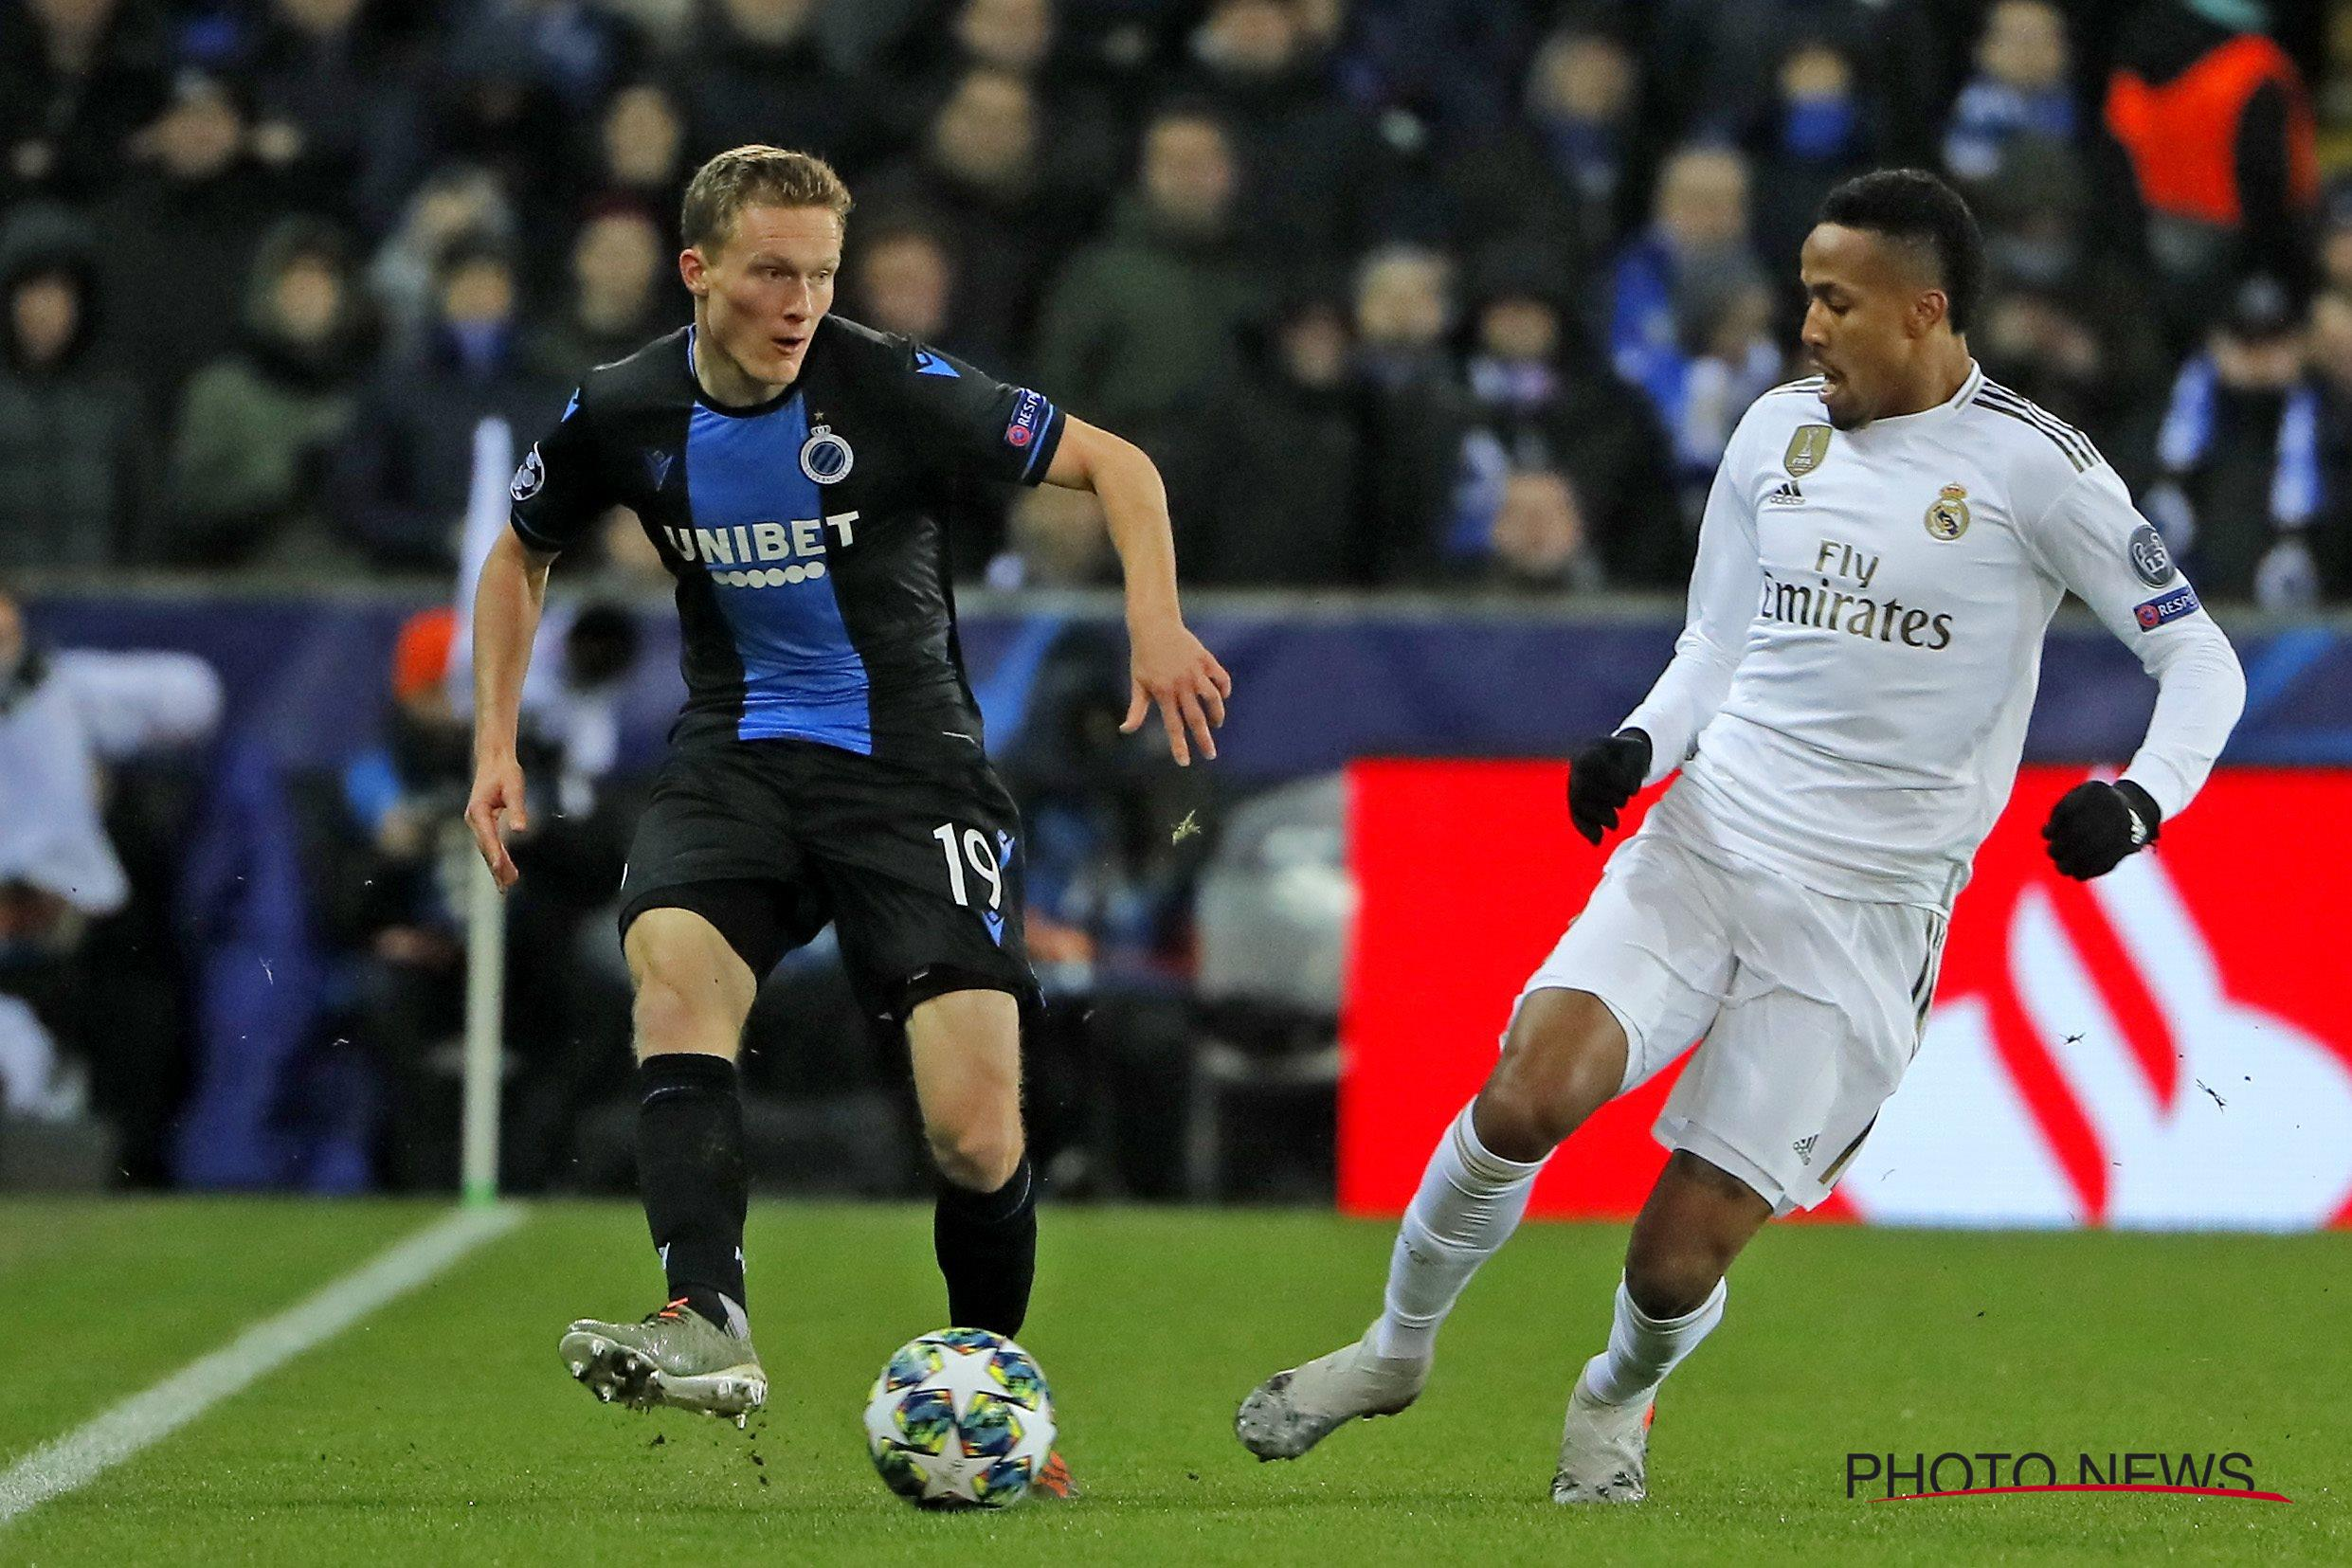 UCL: Dennis Grabs Assist  In Club Brugge's Home Loss To Real Madrid; Idowu  Falls  With Locomotiv